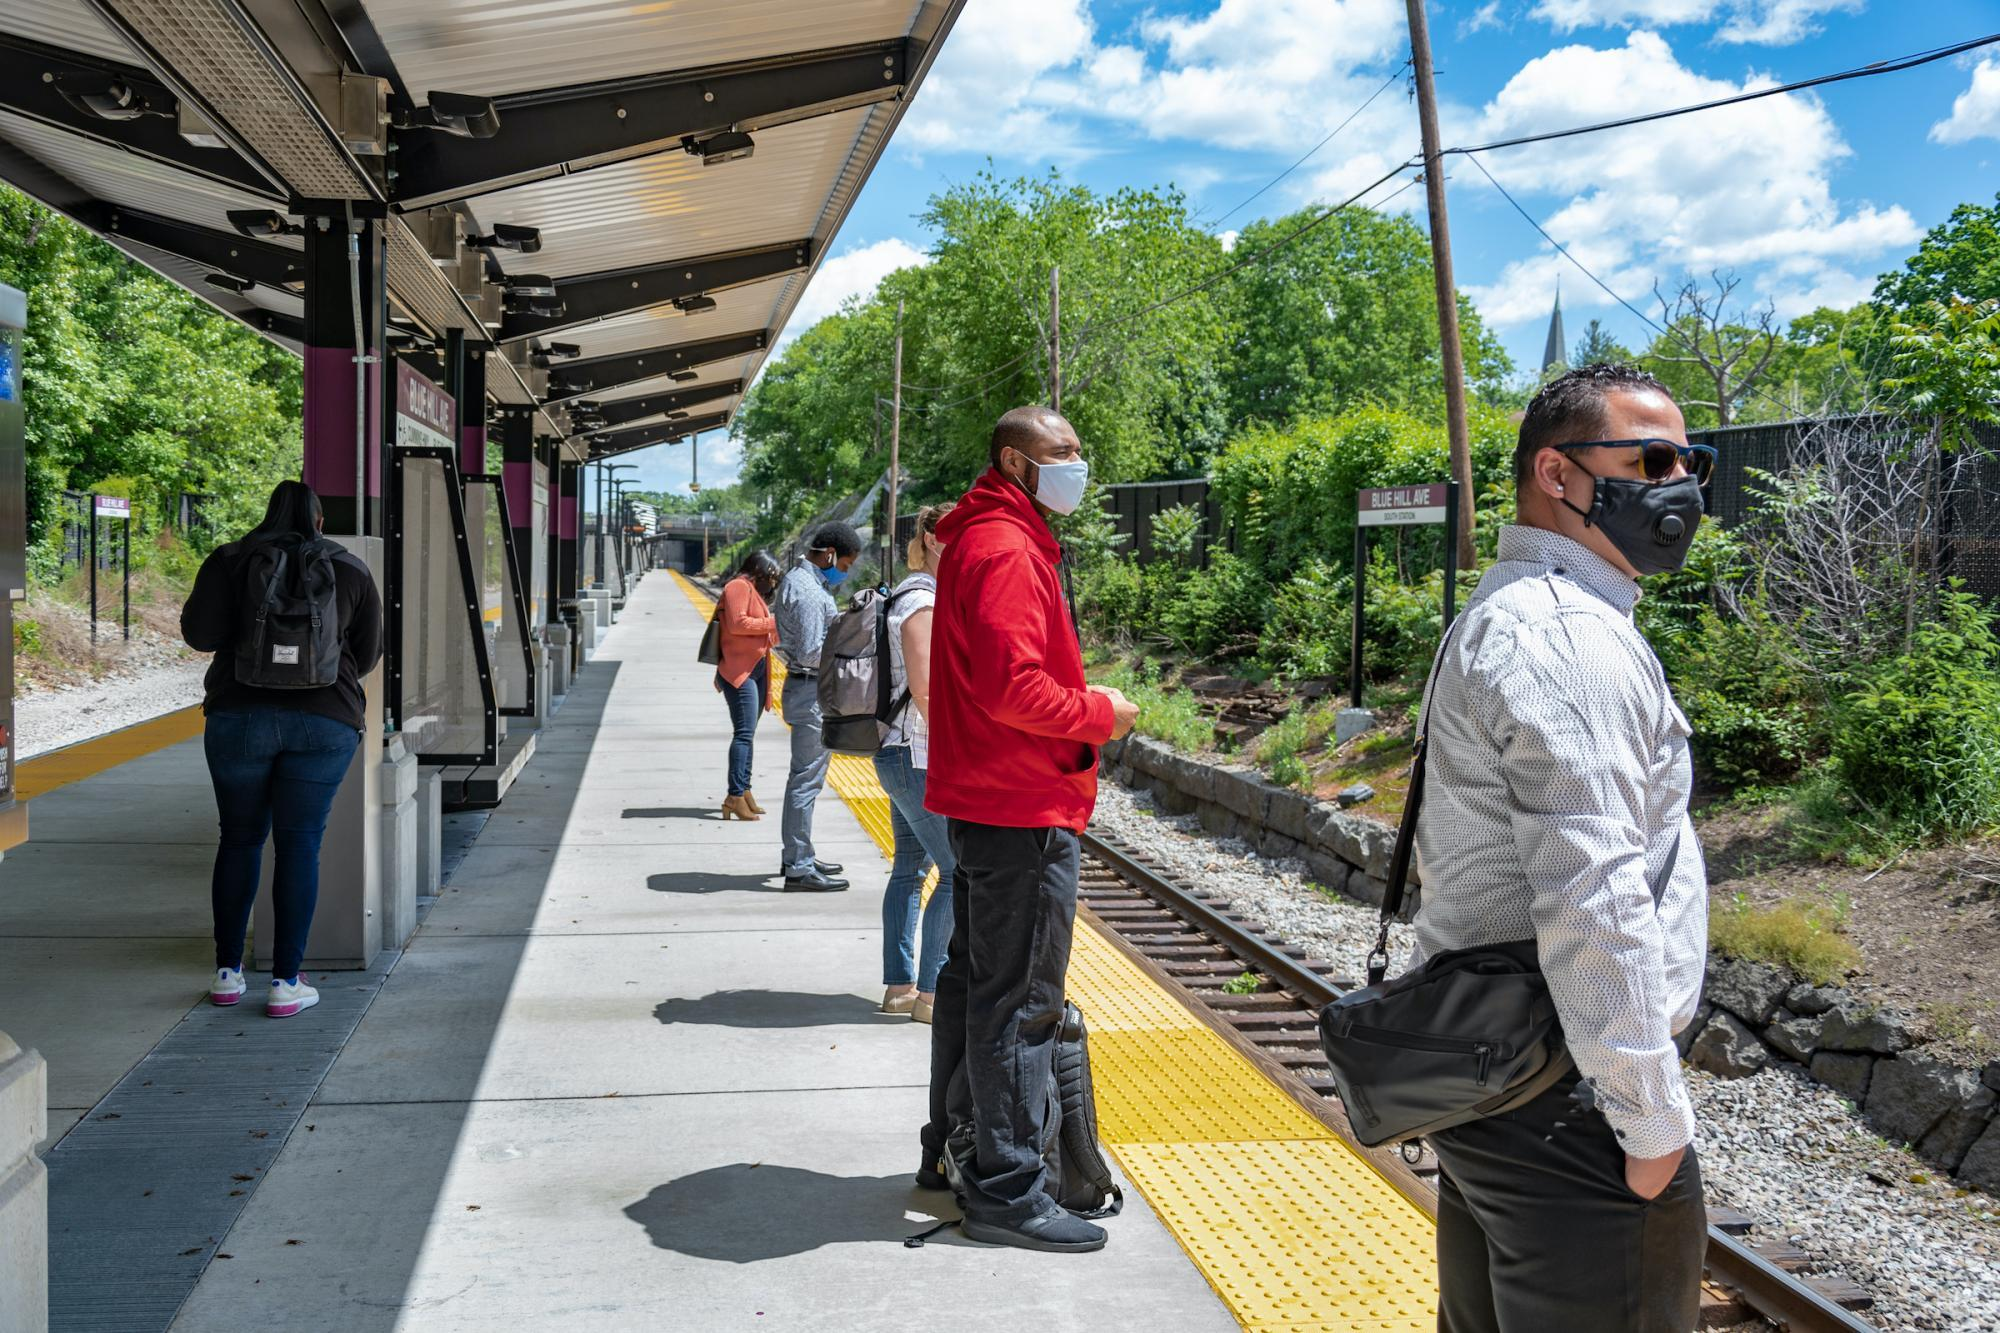 Customers at the Blue Hill Ave Commuter Rail platform, wearing face coverings